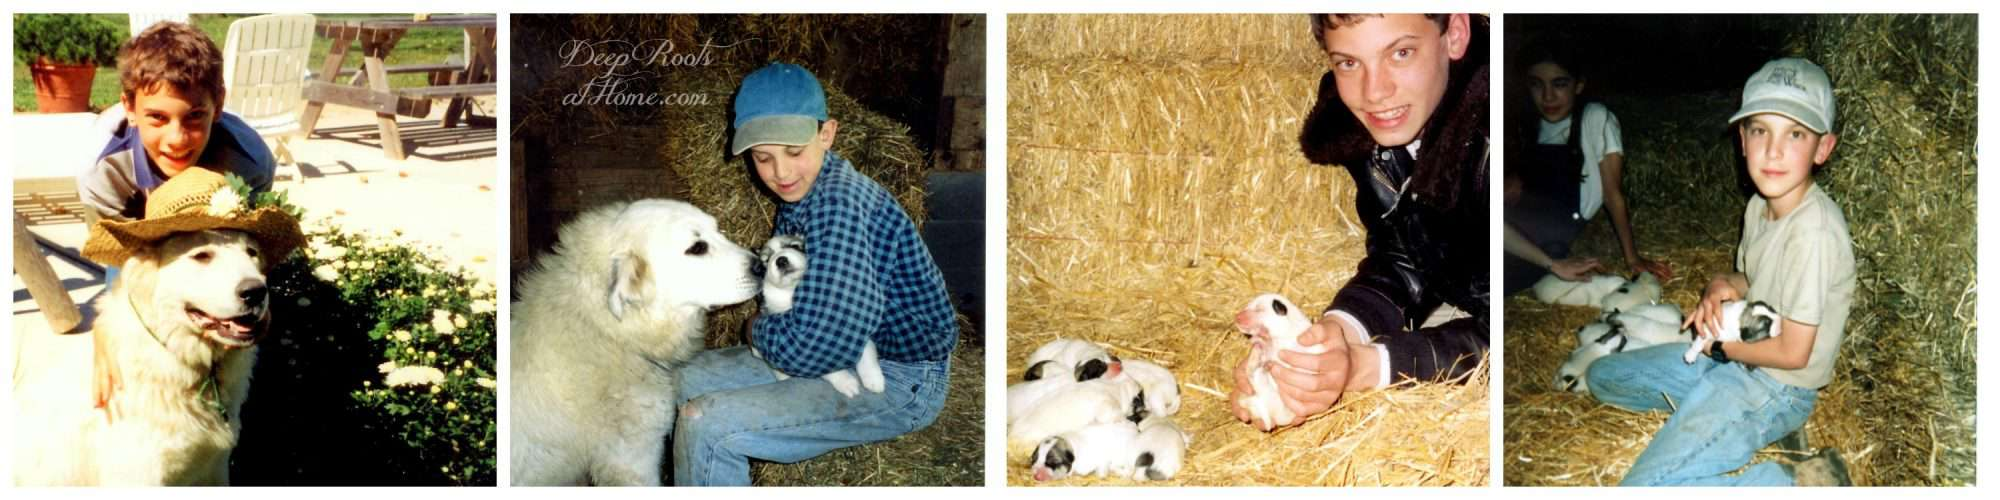 Are We Stressing Our Kids Enough? A collage of photos of out kids raising puppies for sale.